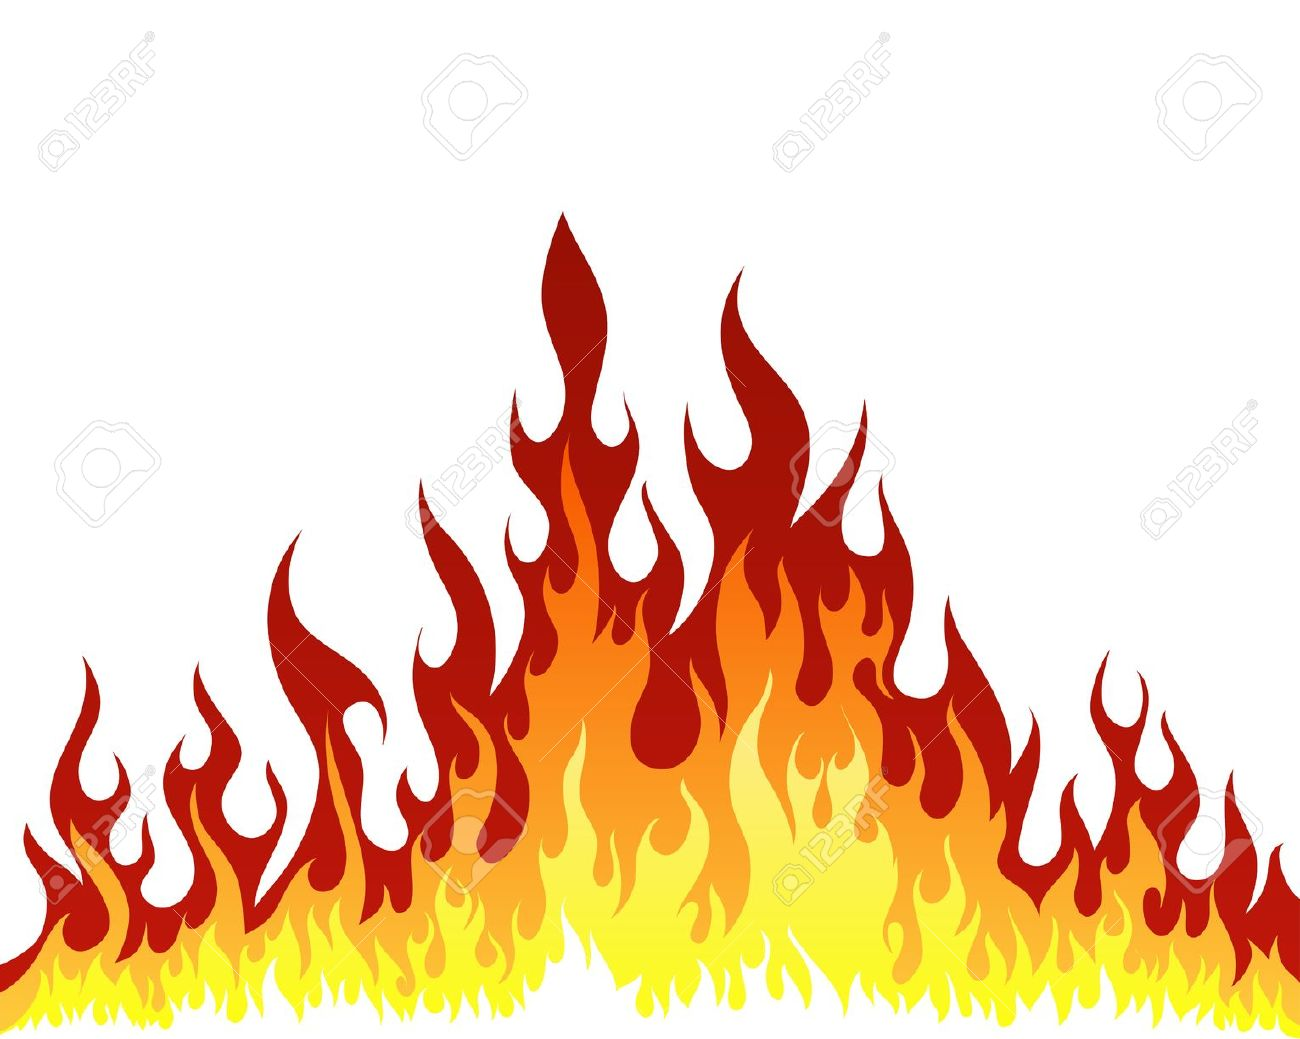 Blazing fire clipart.